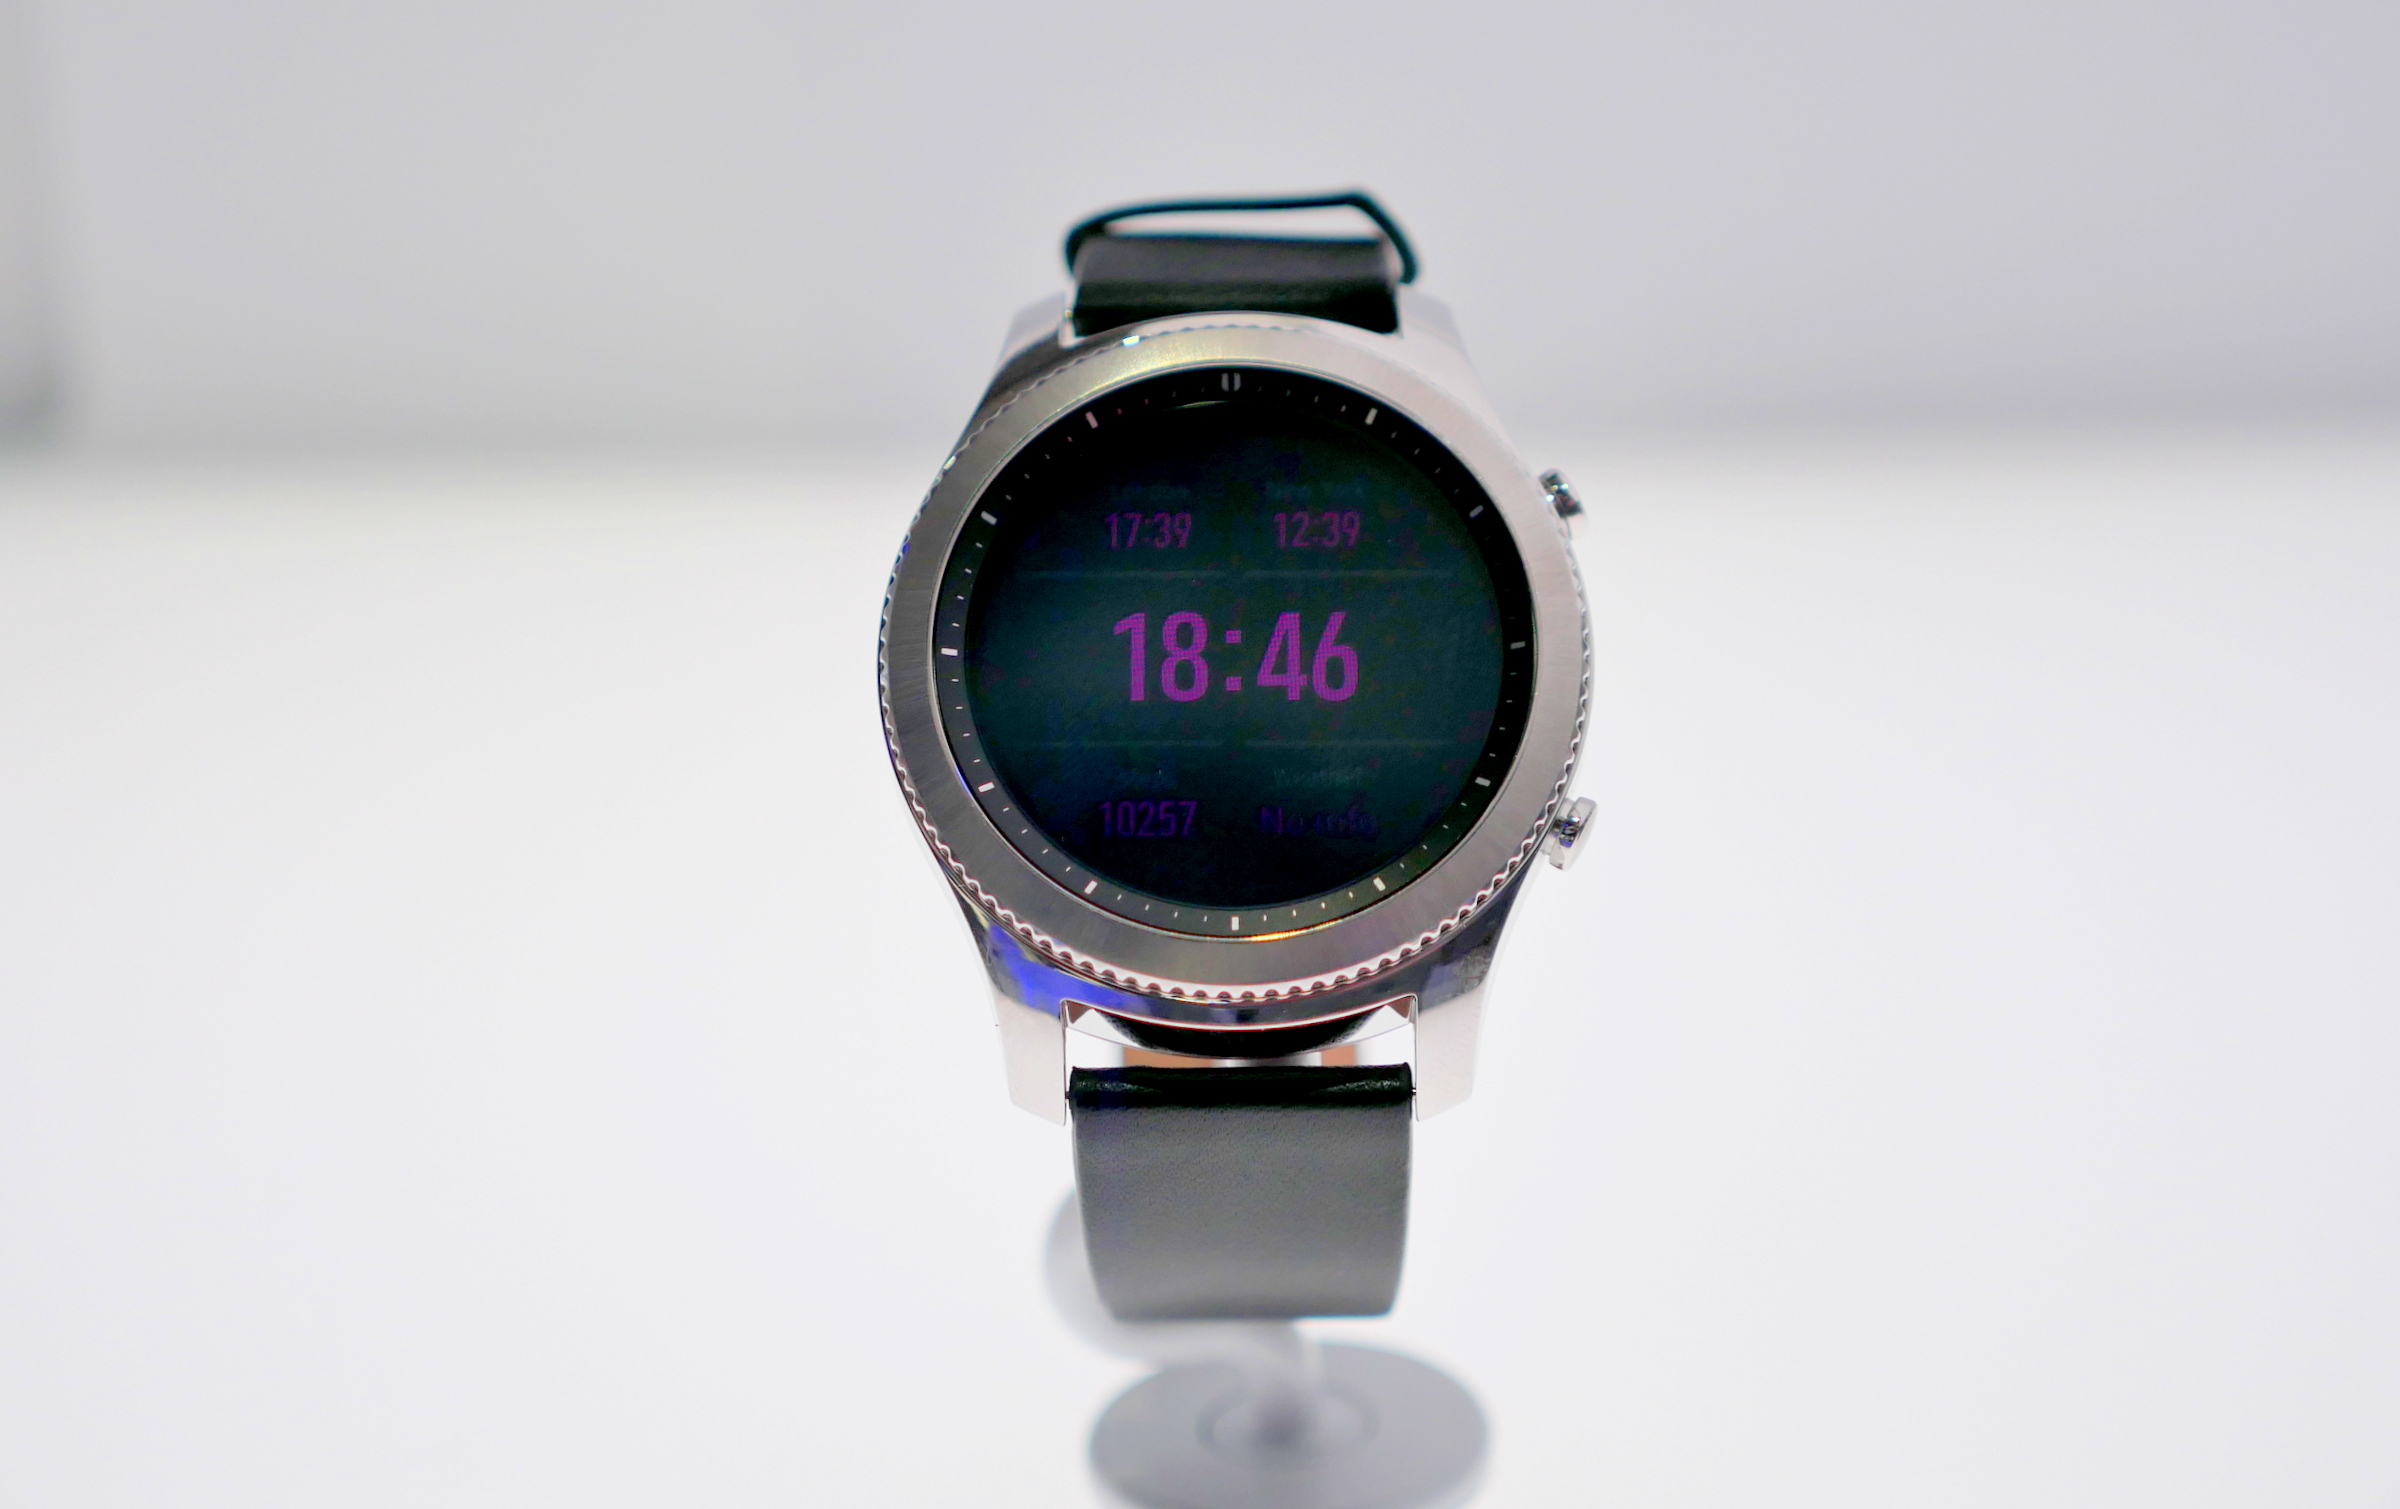 How Much Can I Get For A Galaxy Phone together with Samsung GALAXY Note Pro 12 2 together with Product also Samsung Galaxy S3 as well Samsung Unveils Gear S3 Classic And Frontier Smartwatches 172949 0. on samsung galaxy s3 verizon